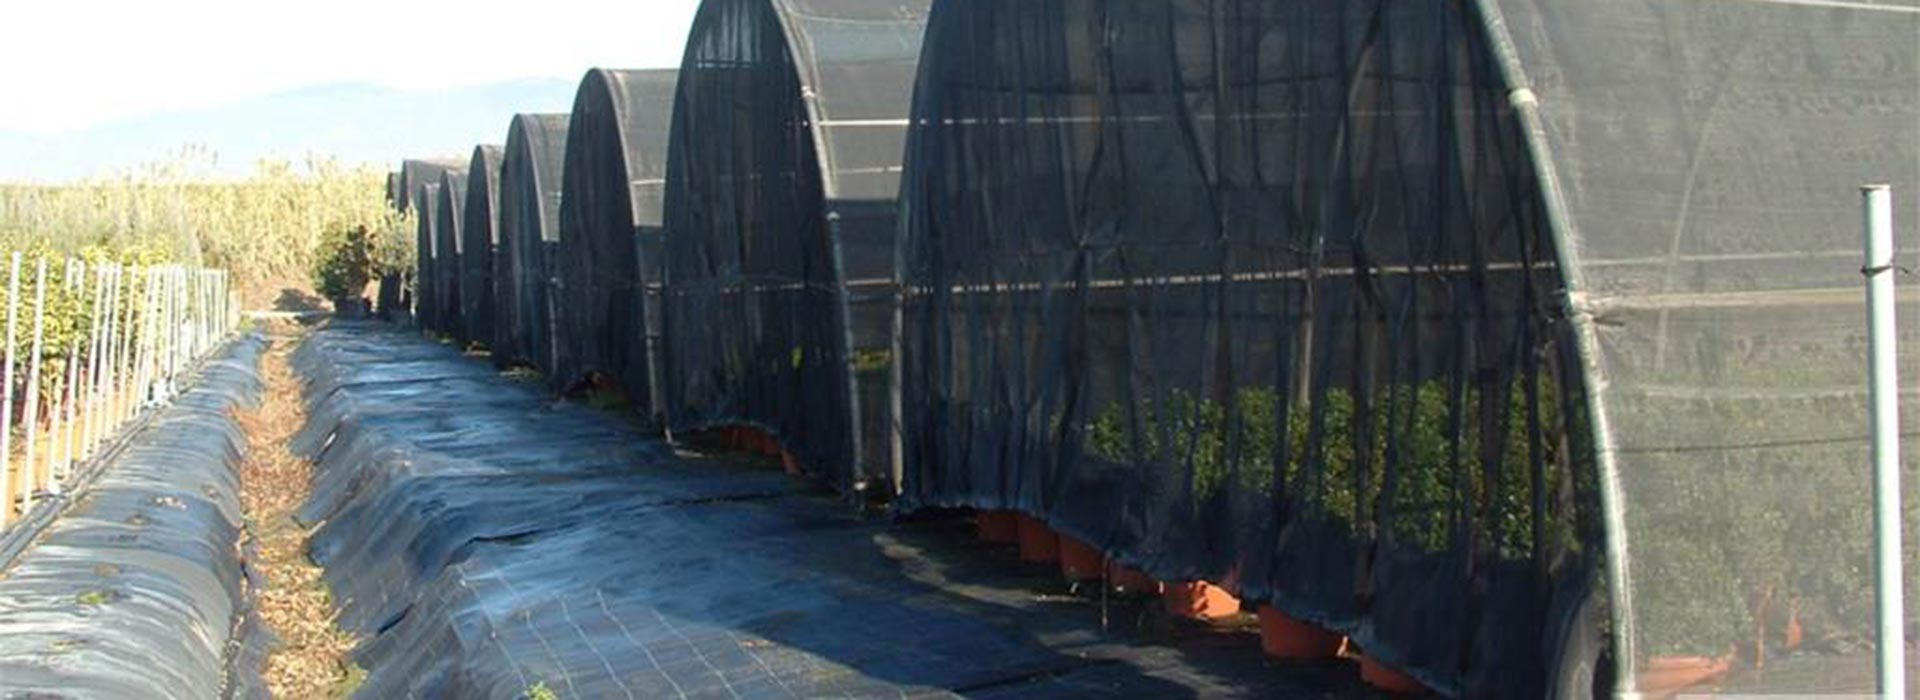 SHADE, WINDBREAK AND SCREENING NETS